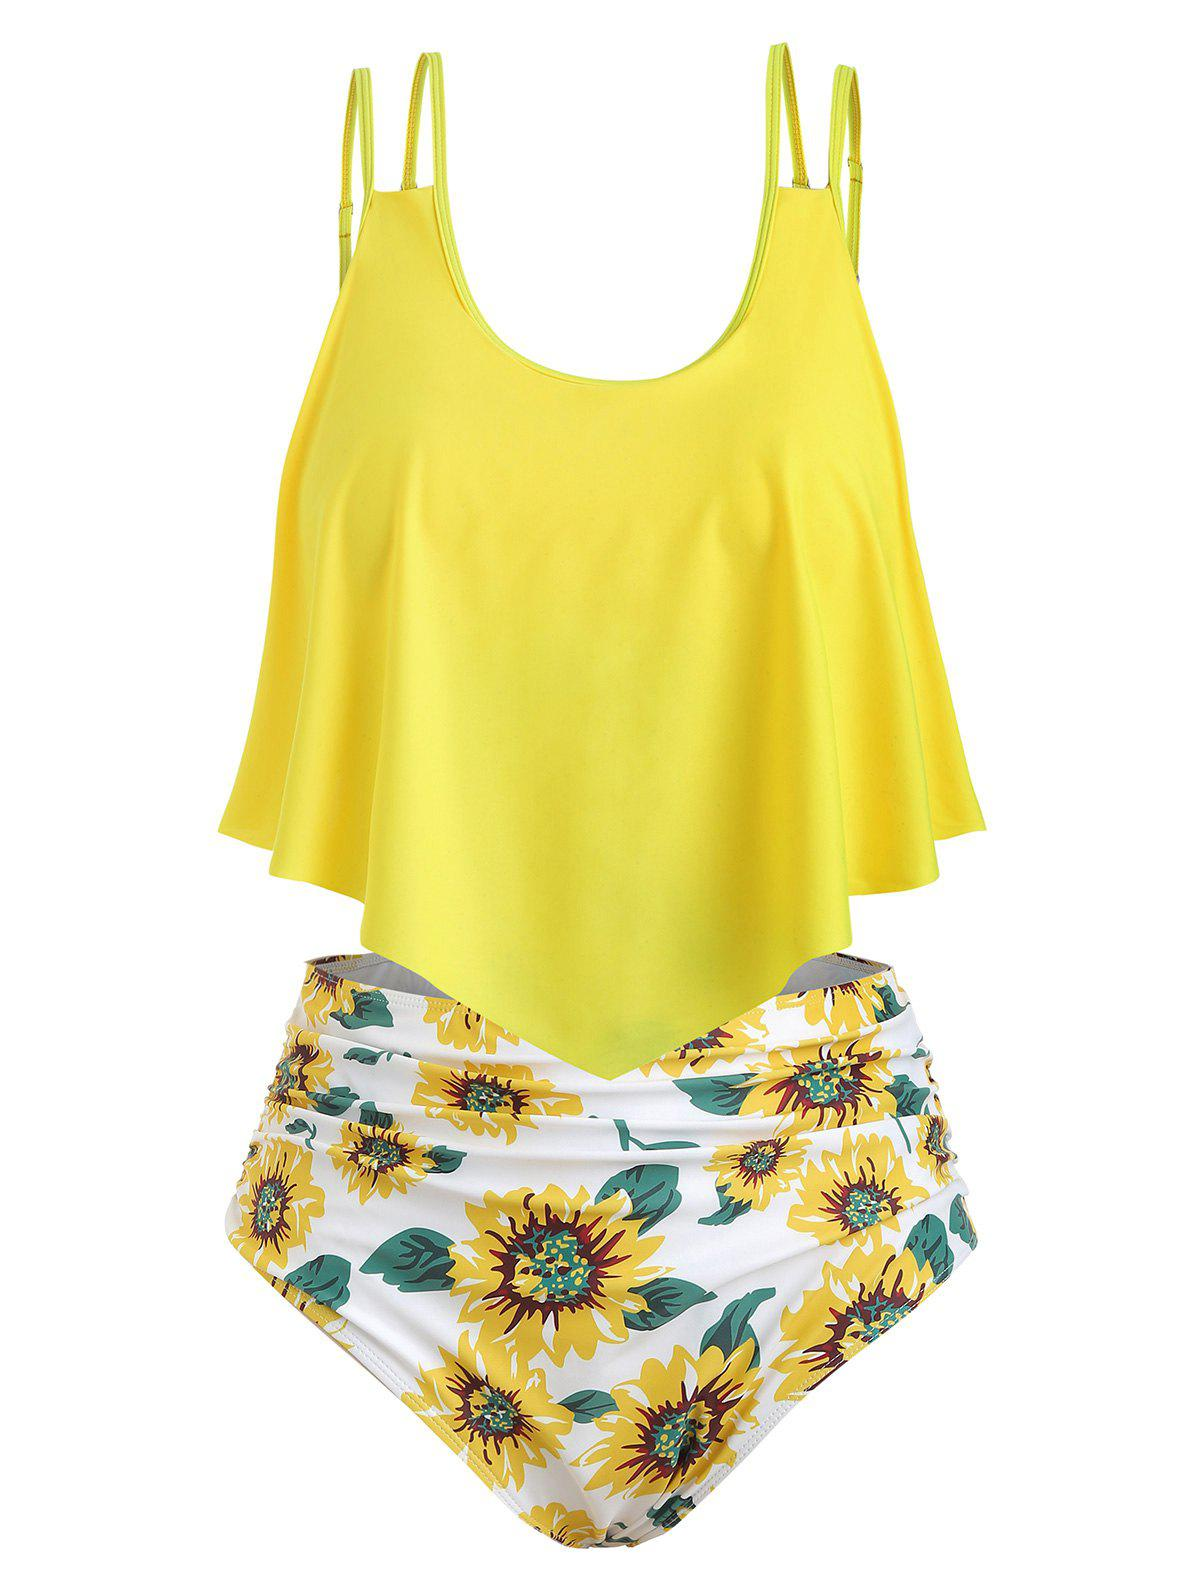 2f54c19086510 27% OFF] Contrast Overlay Sunflower Plus Size Tankini Set | Rosegal